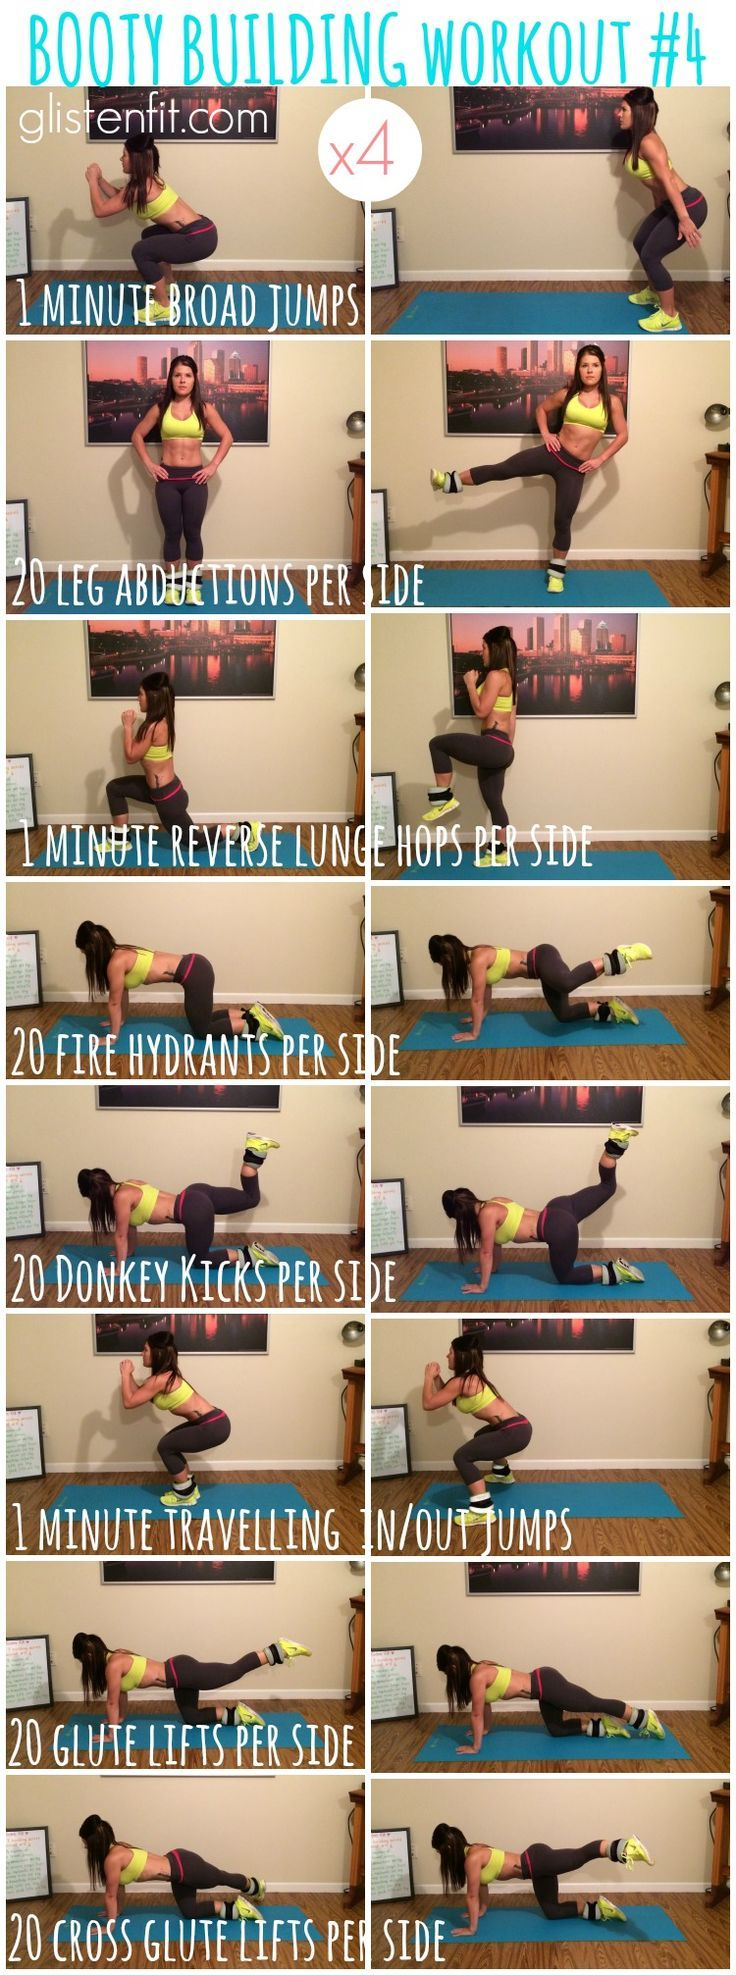 BOOTY BUILDING Workout #4